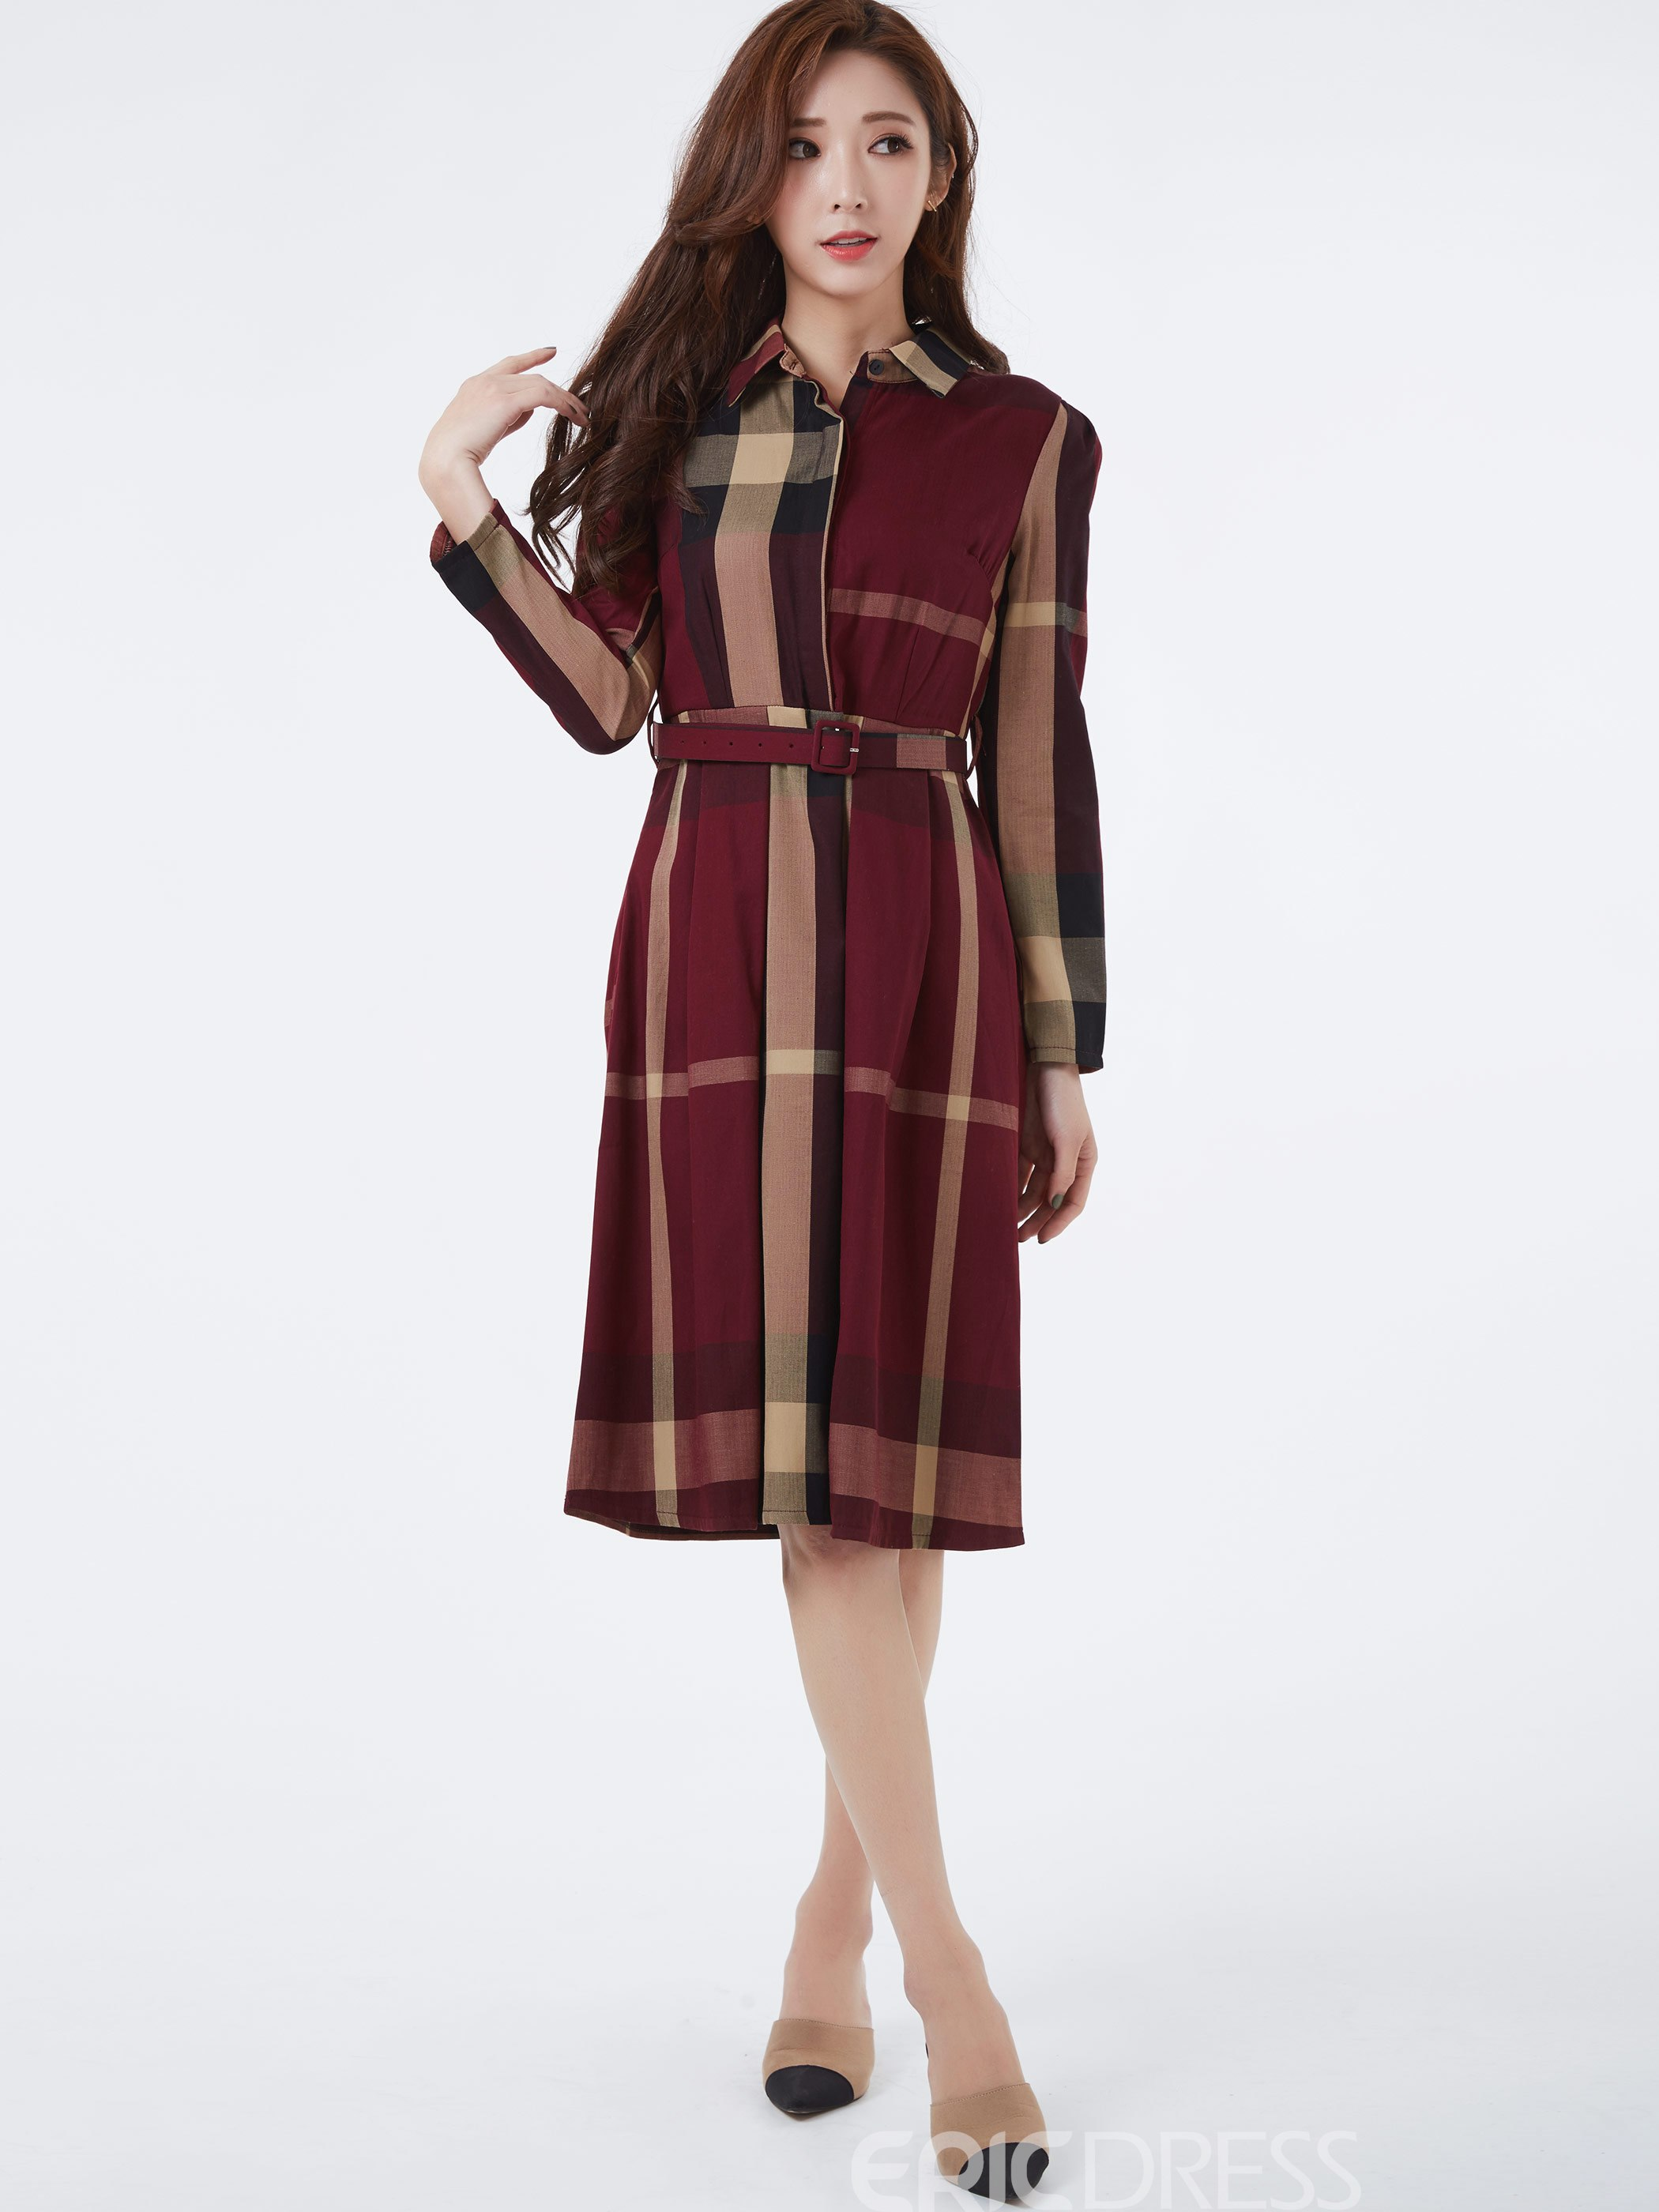 Ericdress Plaid ceinture revers simple boutonnage robe occasionnelle